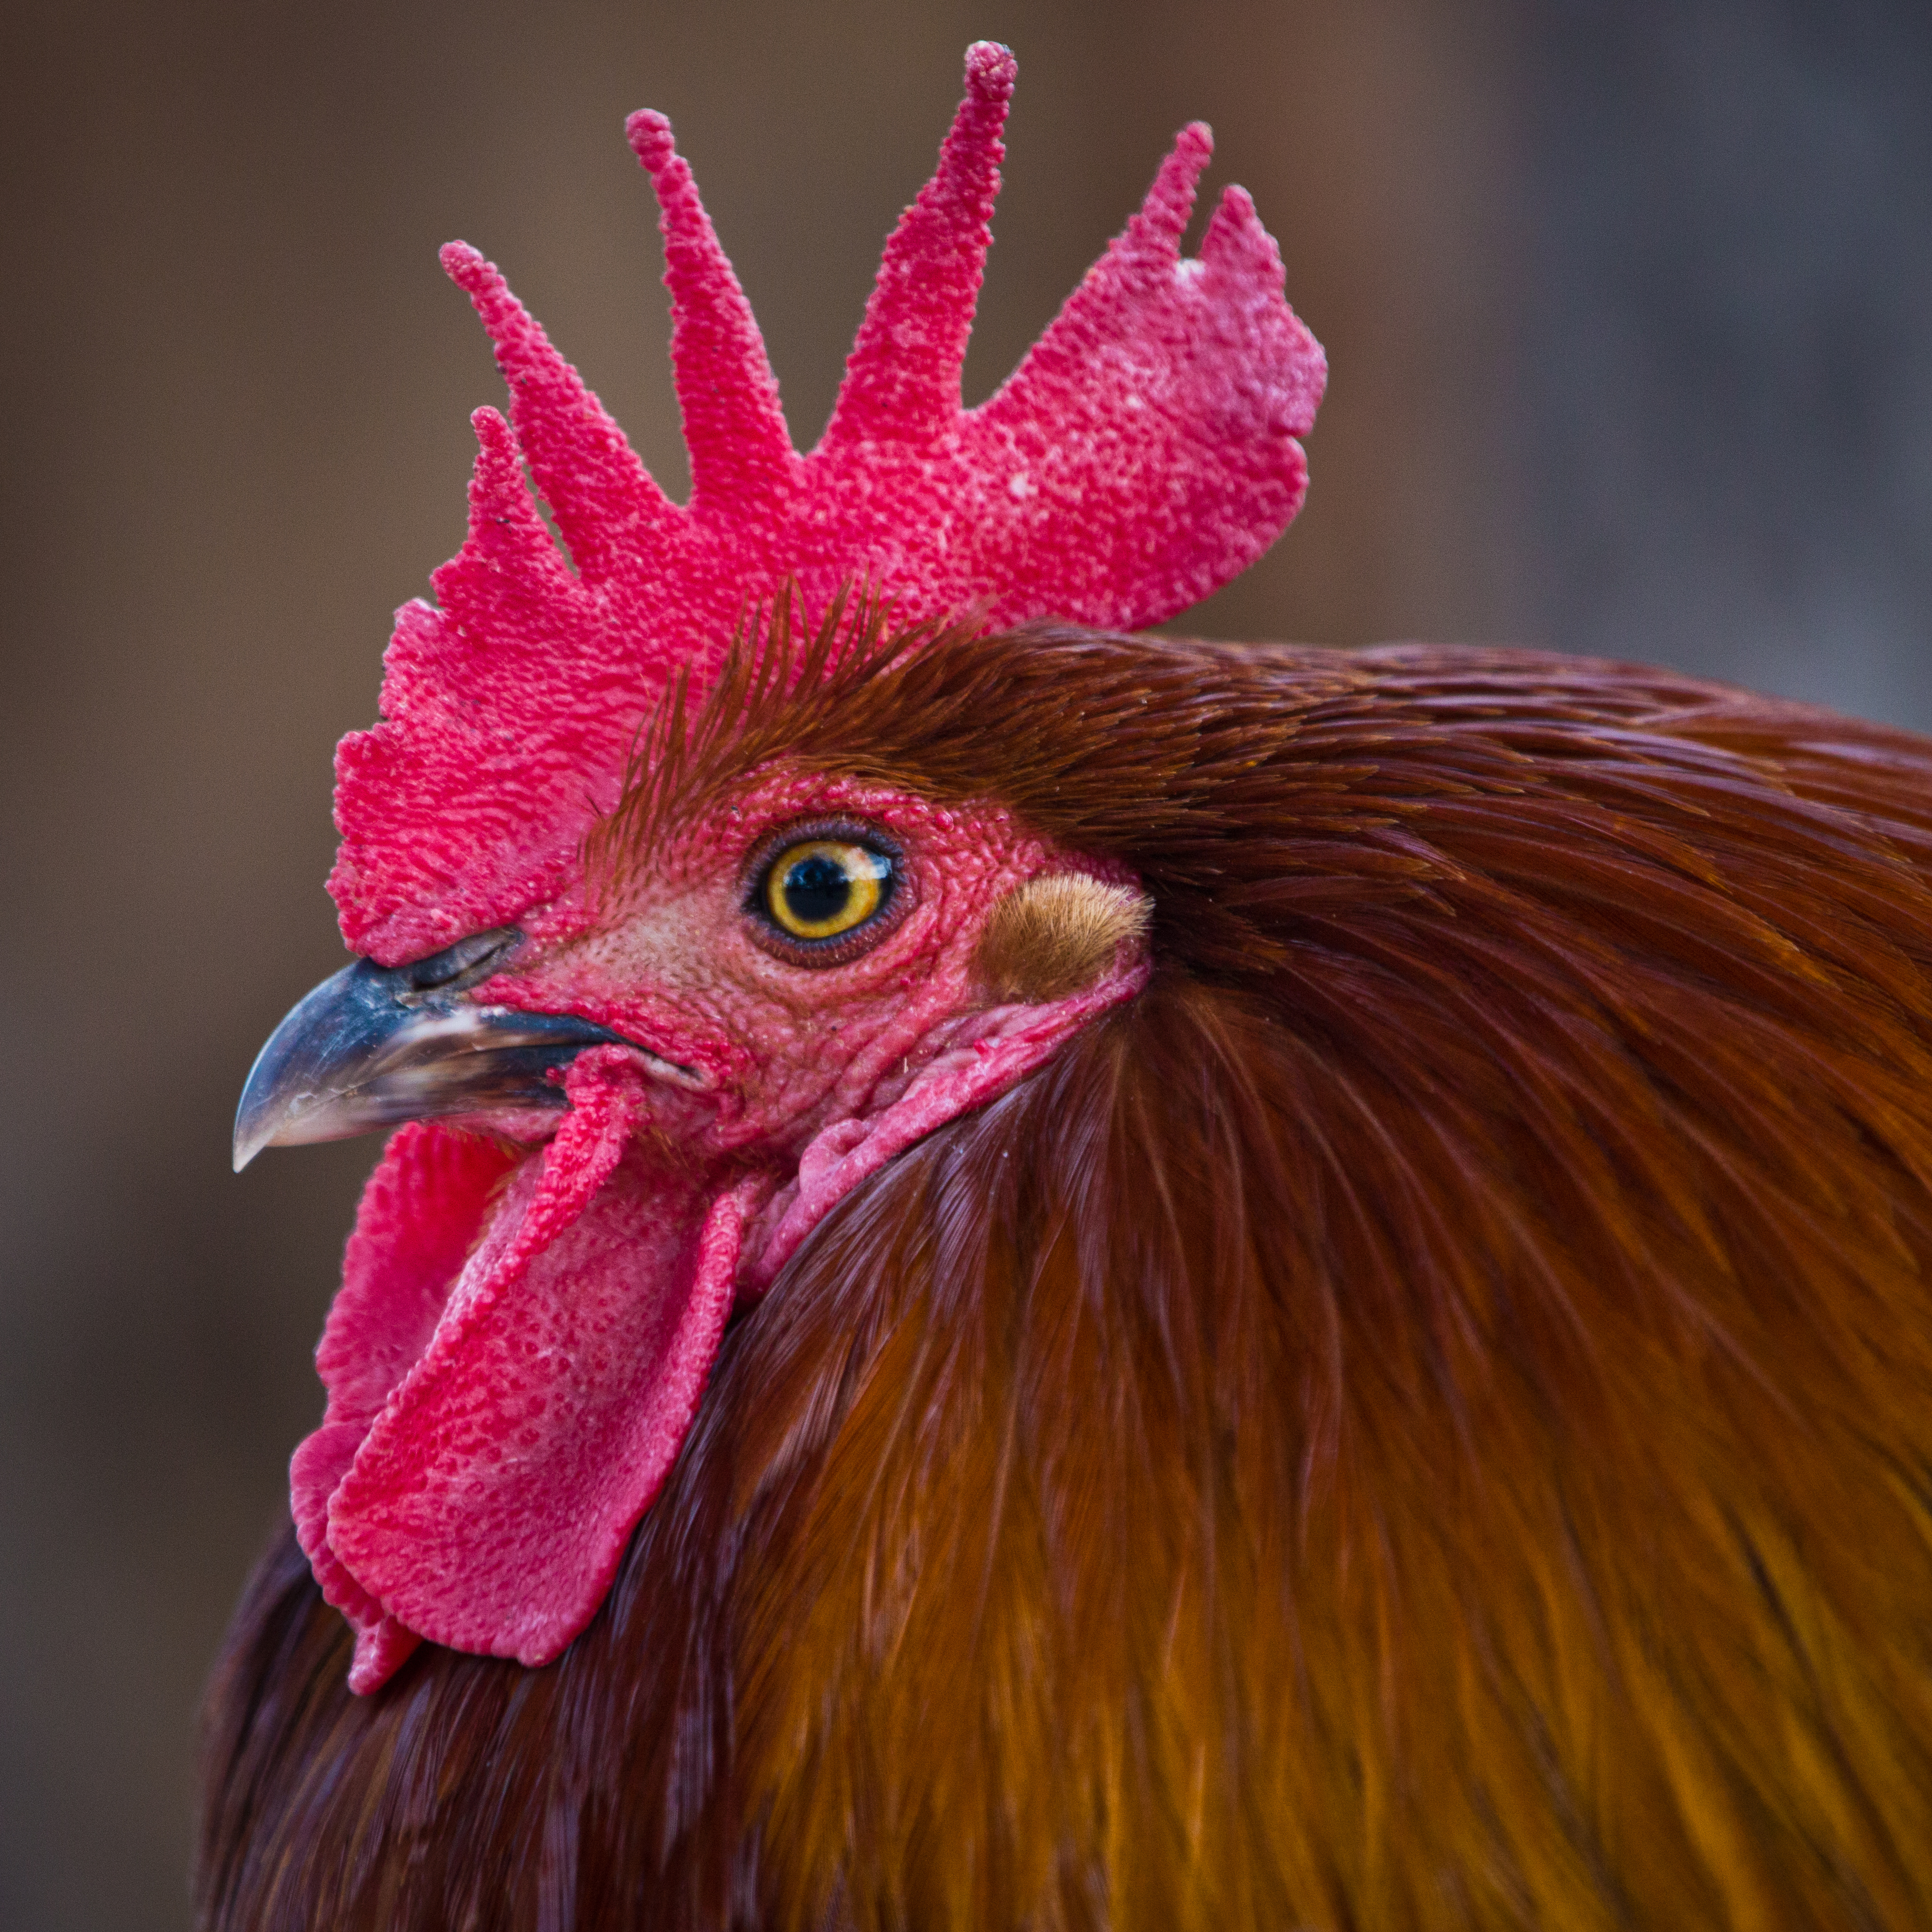 Head of Rooster